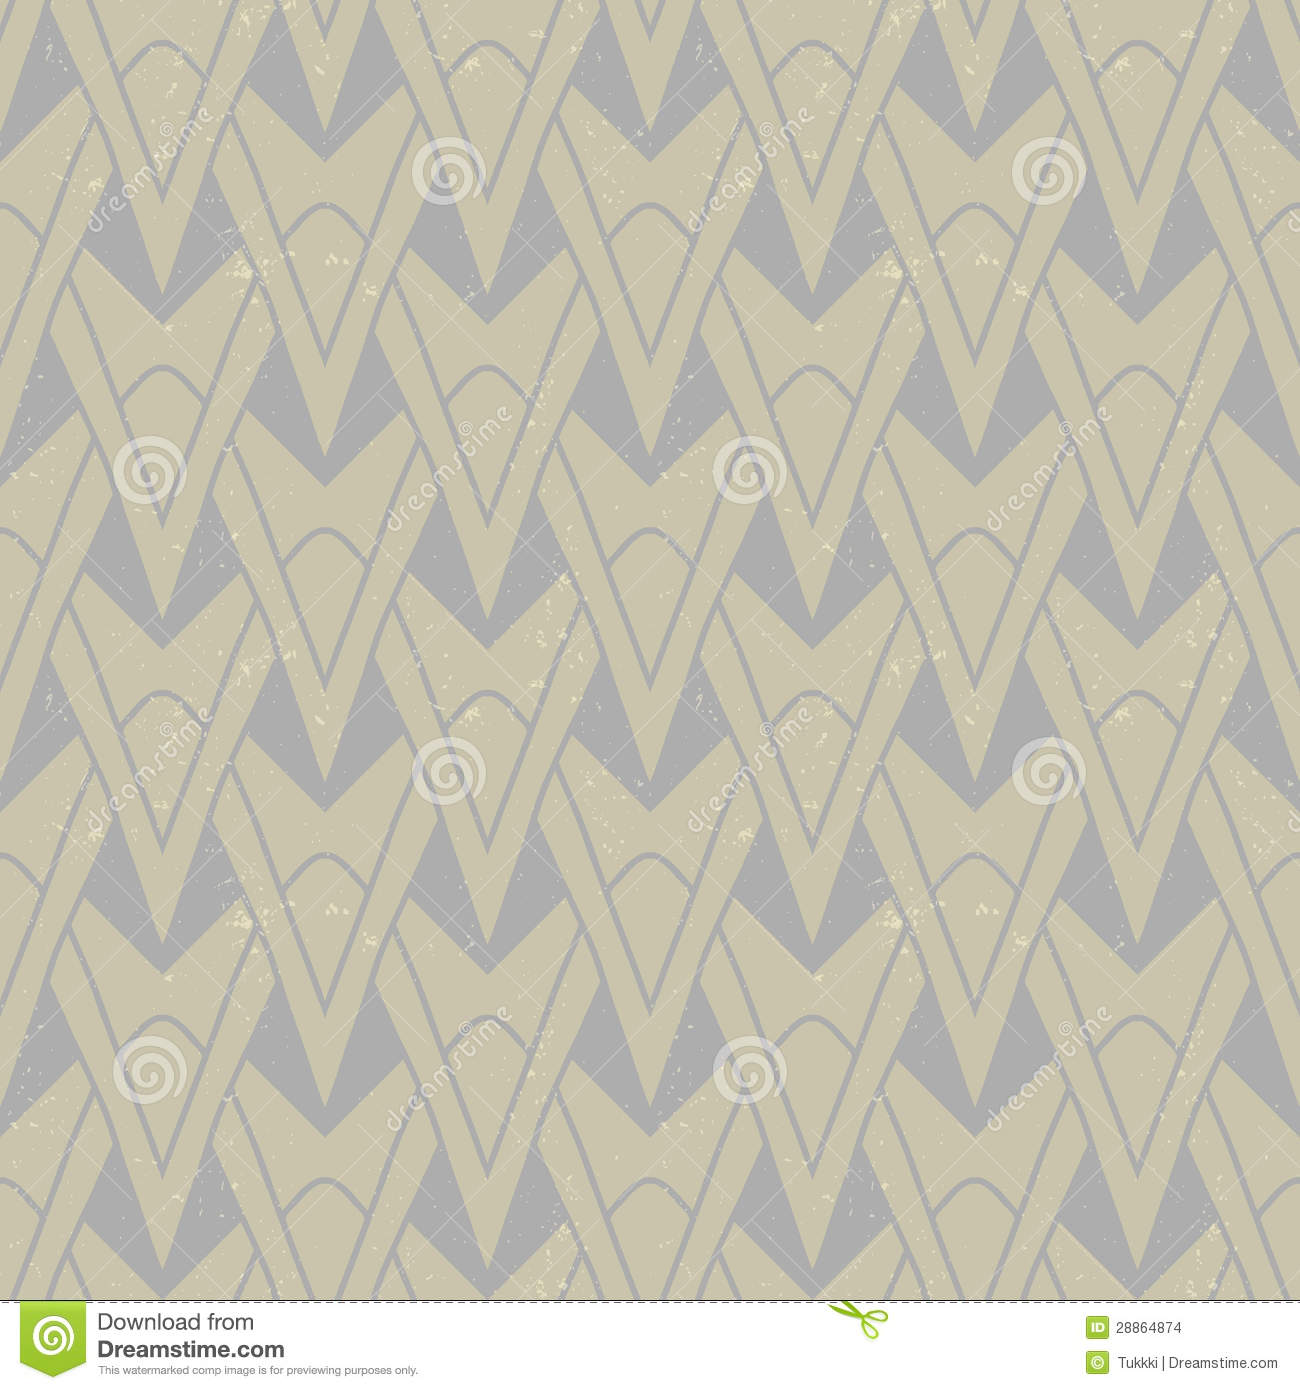 Textured art deco pattern with geometrical motifs stock images image 28864874 - Papier peint art deco ...